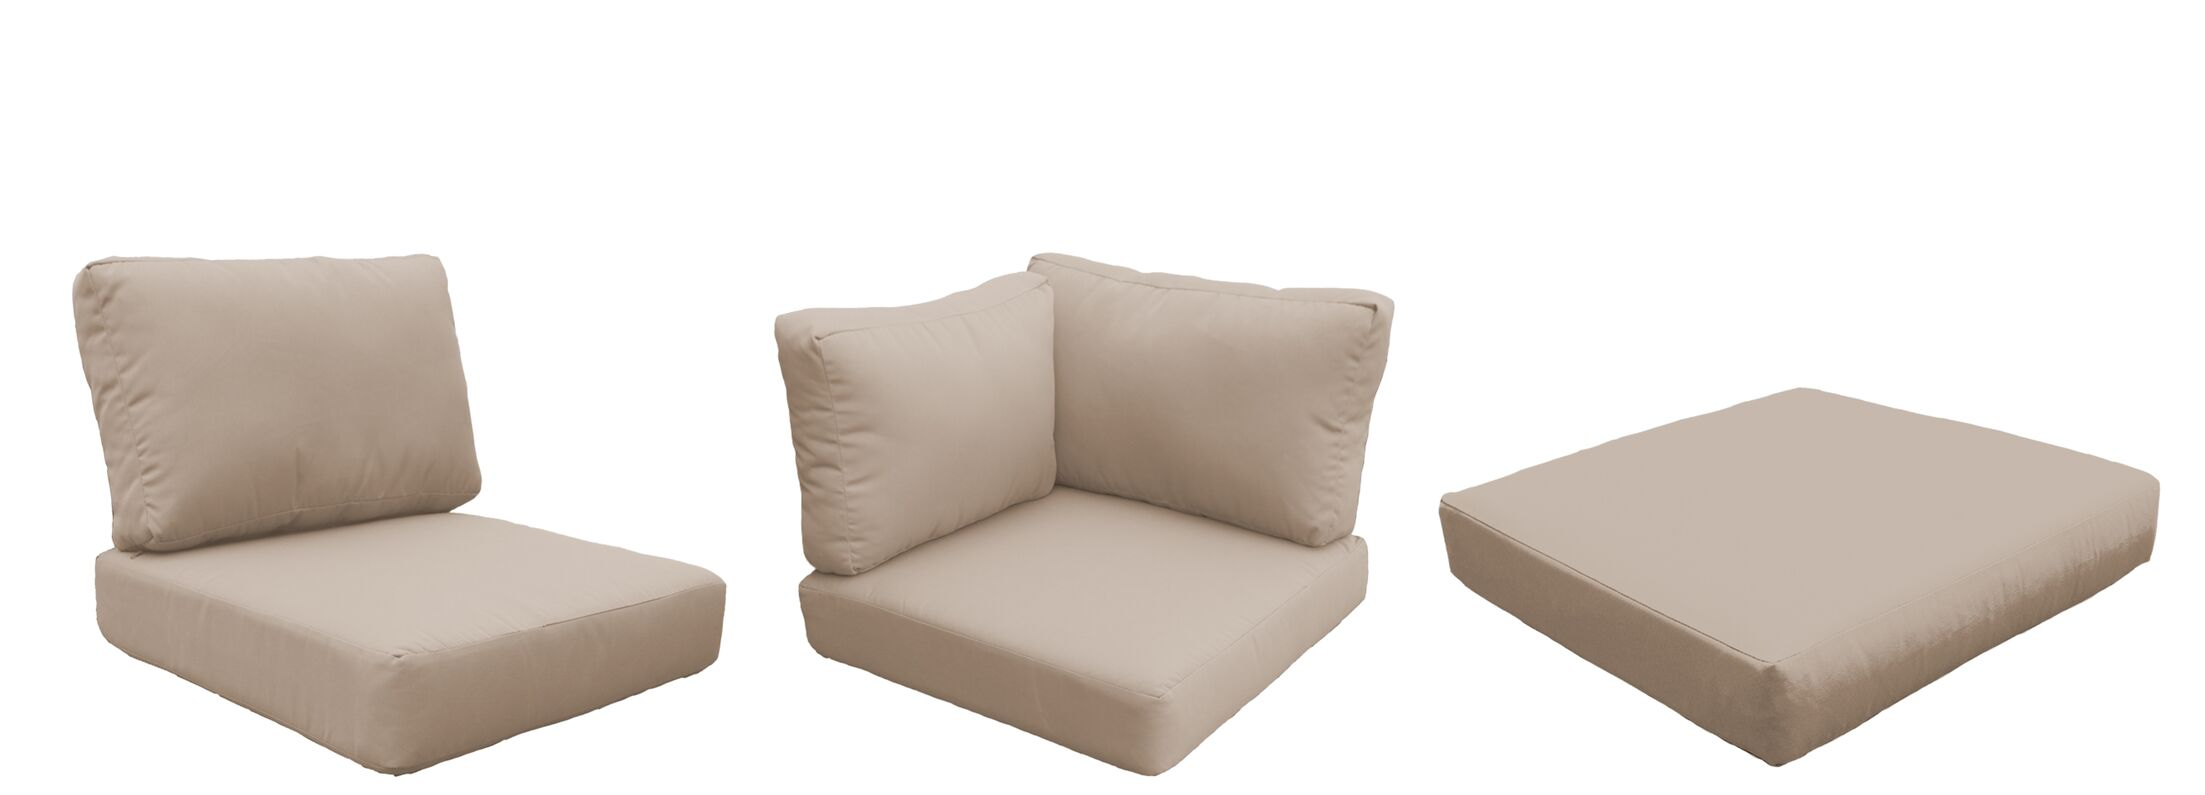 Capecod 16 Piece Outdoor Lounge Chair Cushion Set Fabric: Wheat